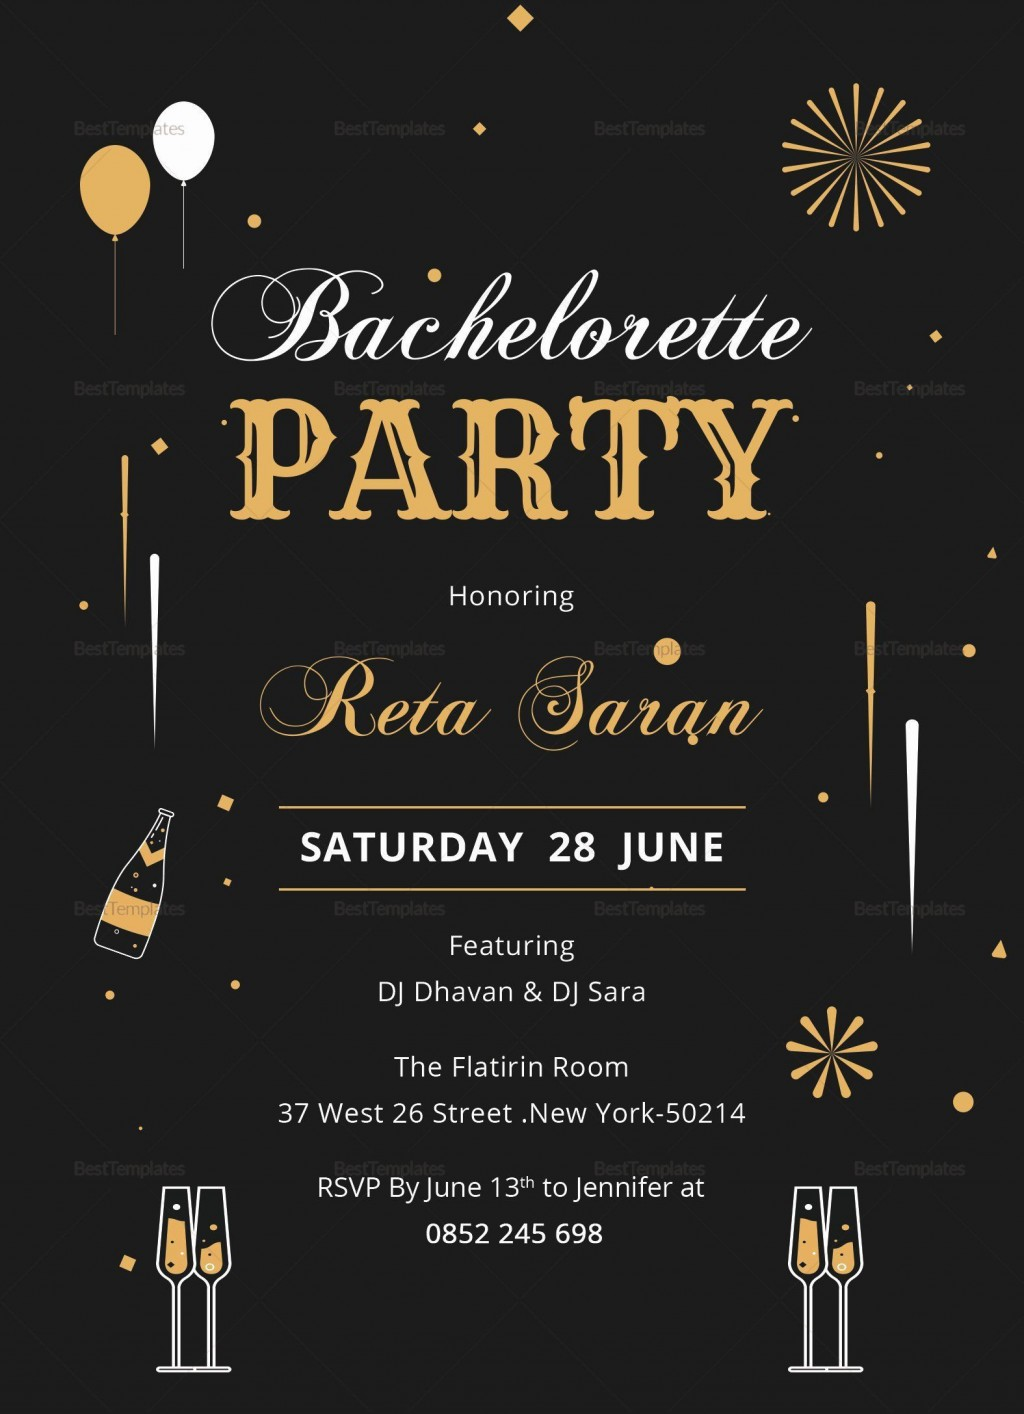 000 Stunning Bachelorette Party Invitation Template Word Free Photo Large